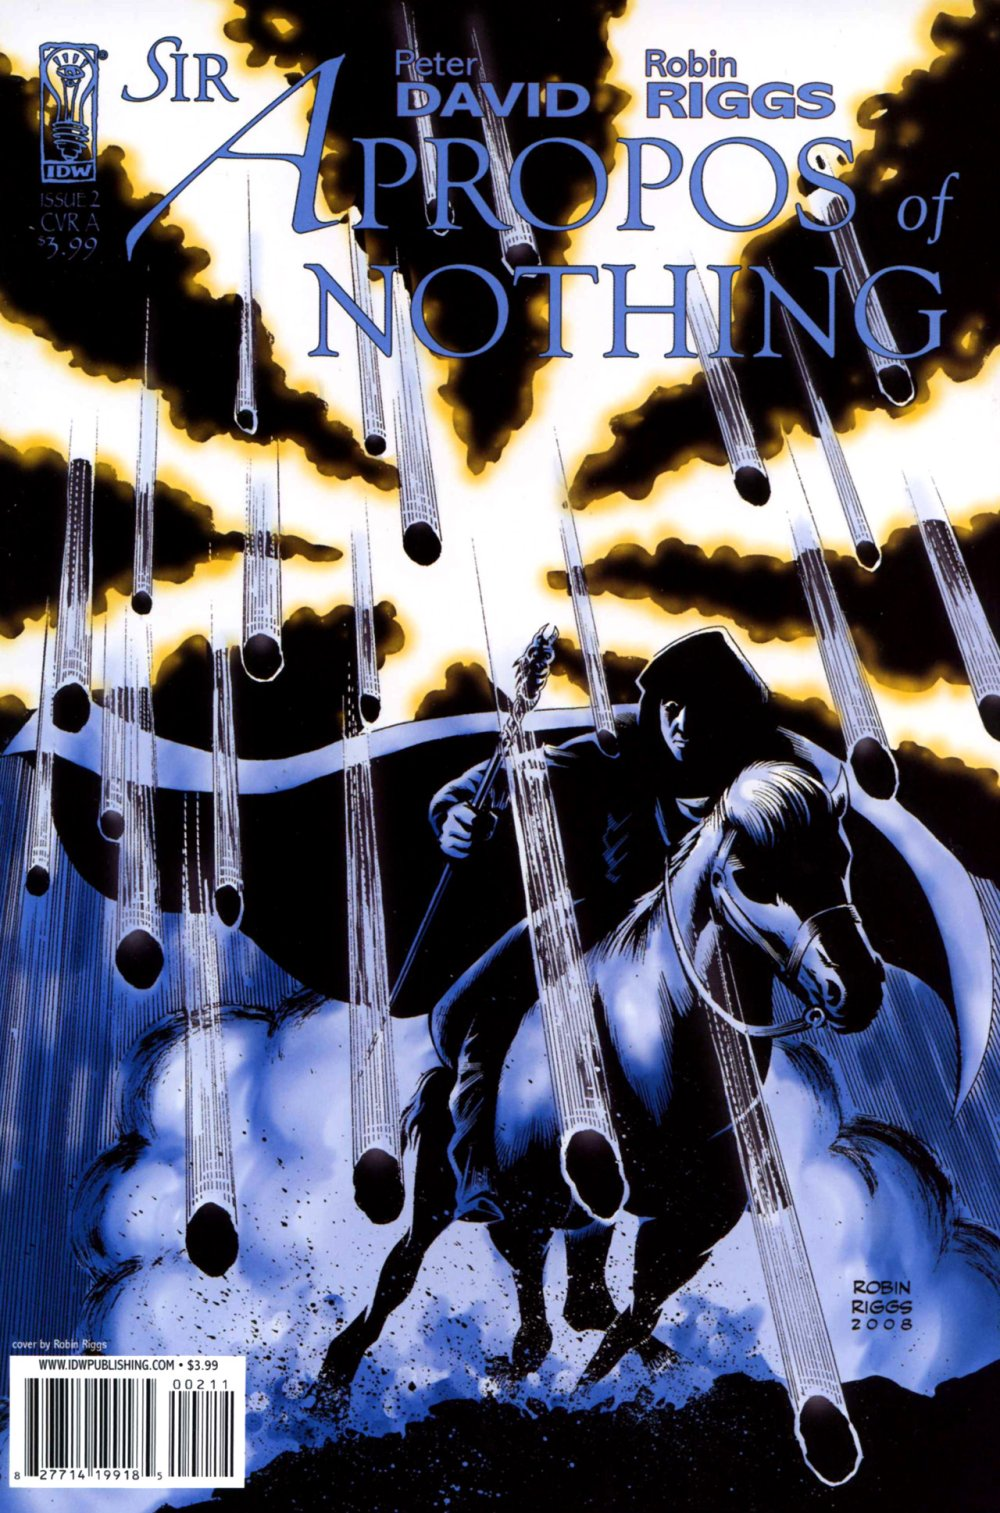 Sir Apropos Of Nothing [IDW] Mini 1 0002a.jpg